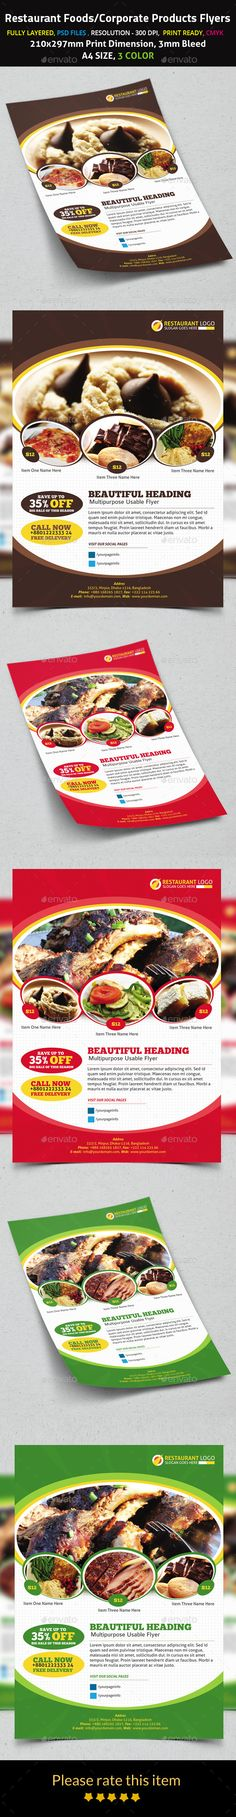 Restaurant Foods/Corporate Products Flyers - Corporate Flyers